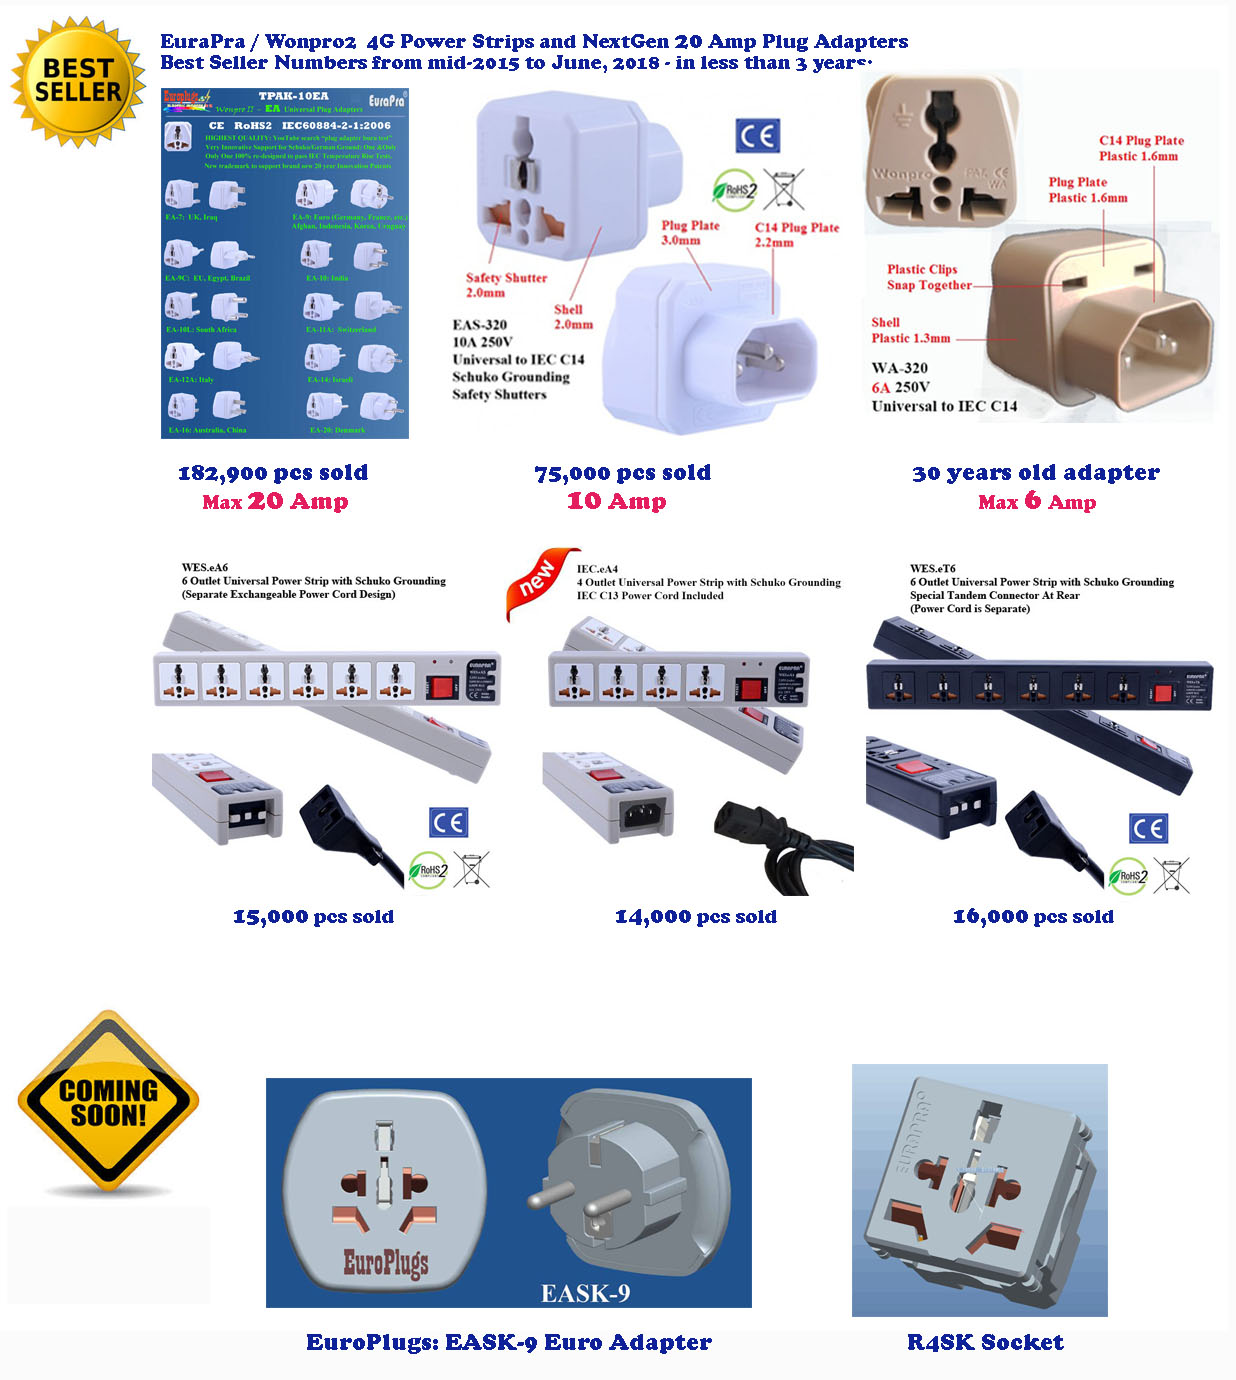 Plug Adapter Shop Adapters Europlugs Truamp Country Chart 16 Amp Wiring Diagram Uk Safety Shutters